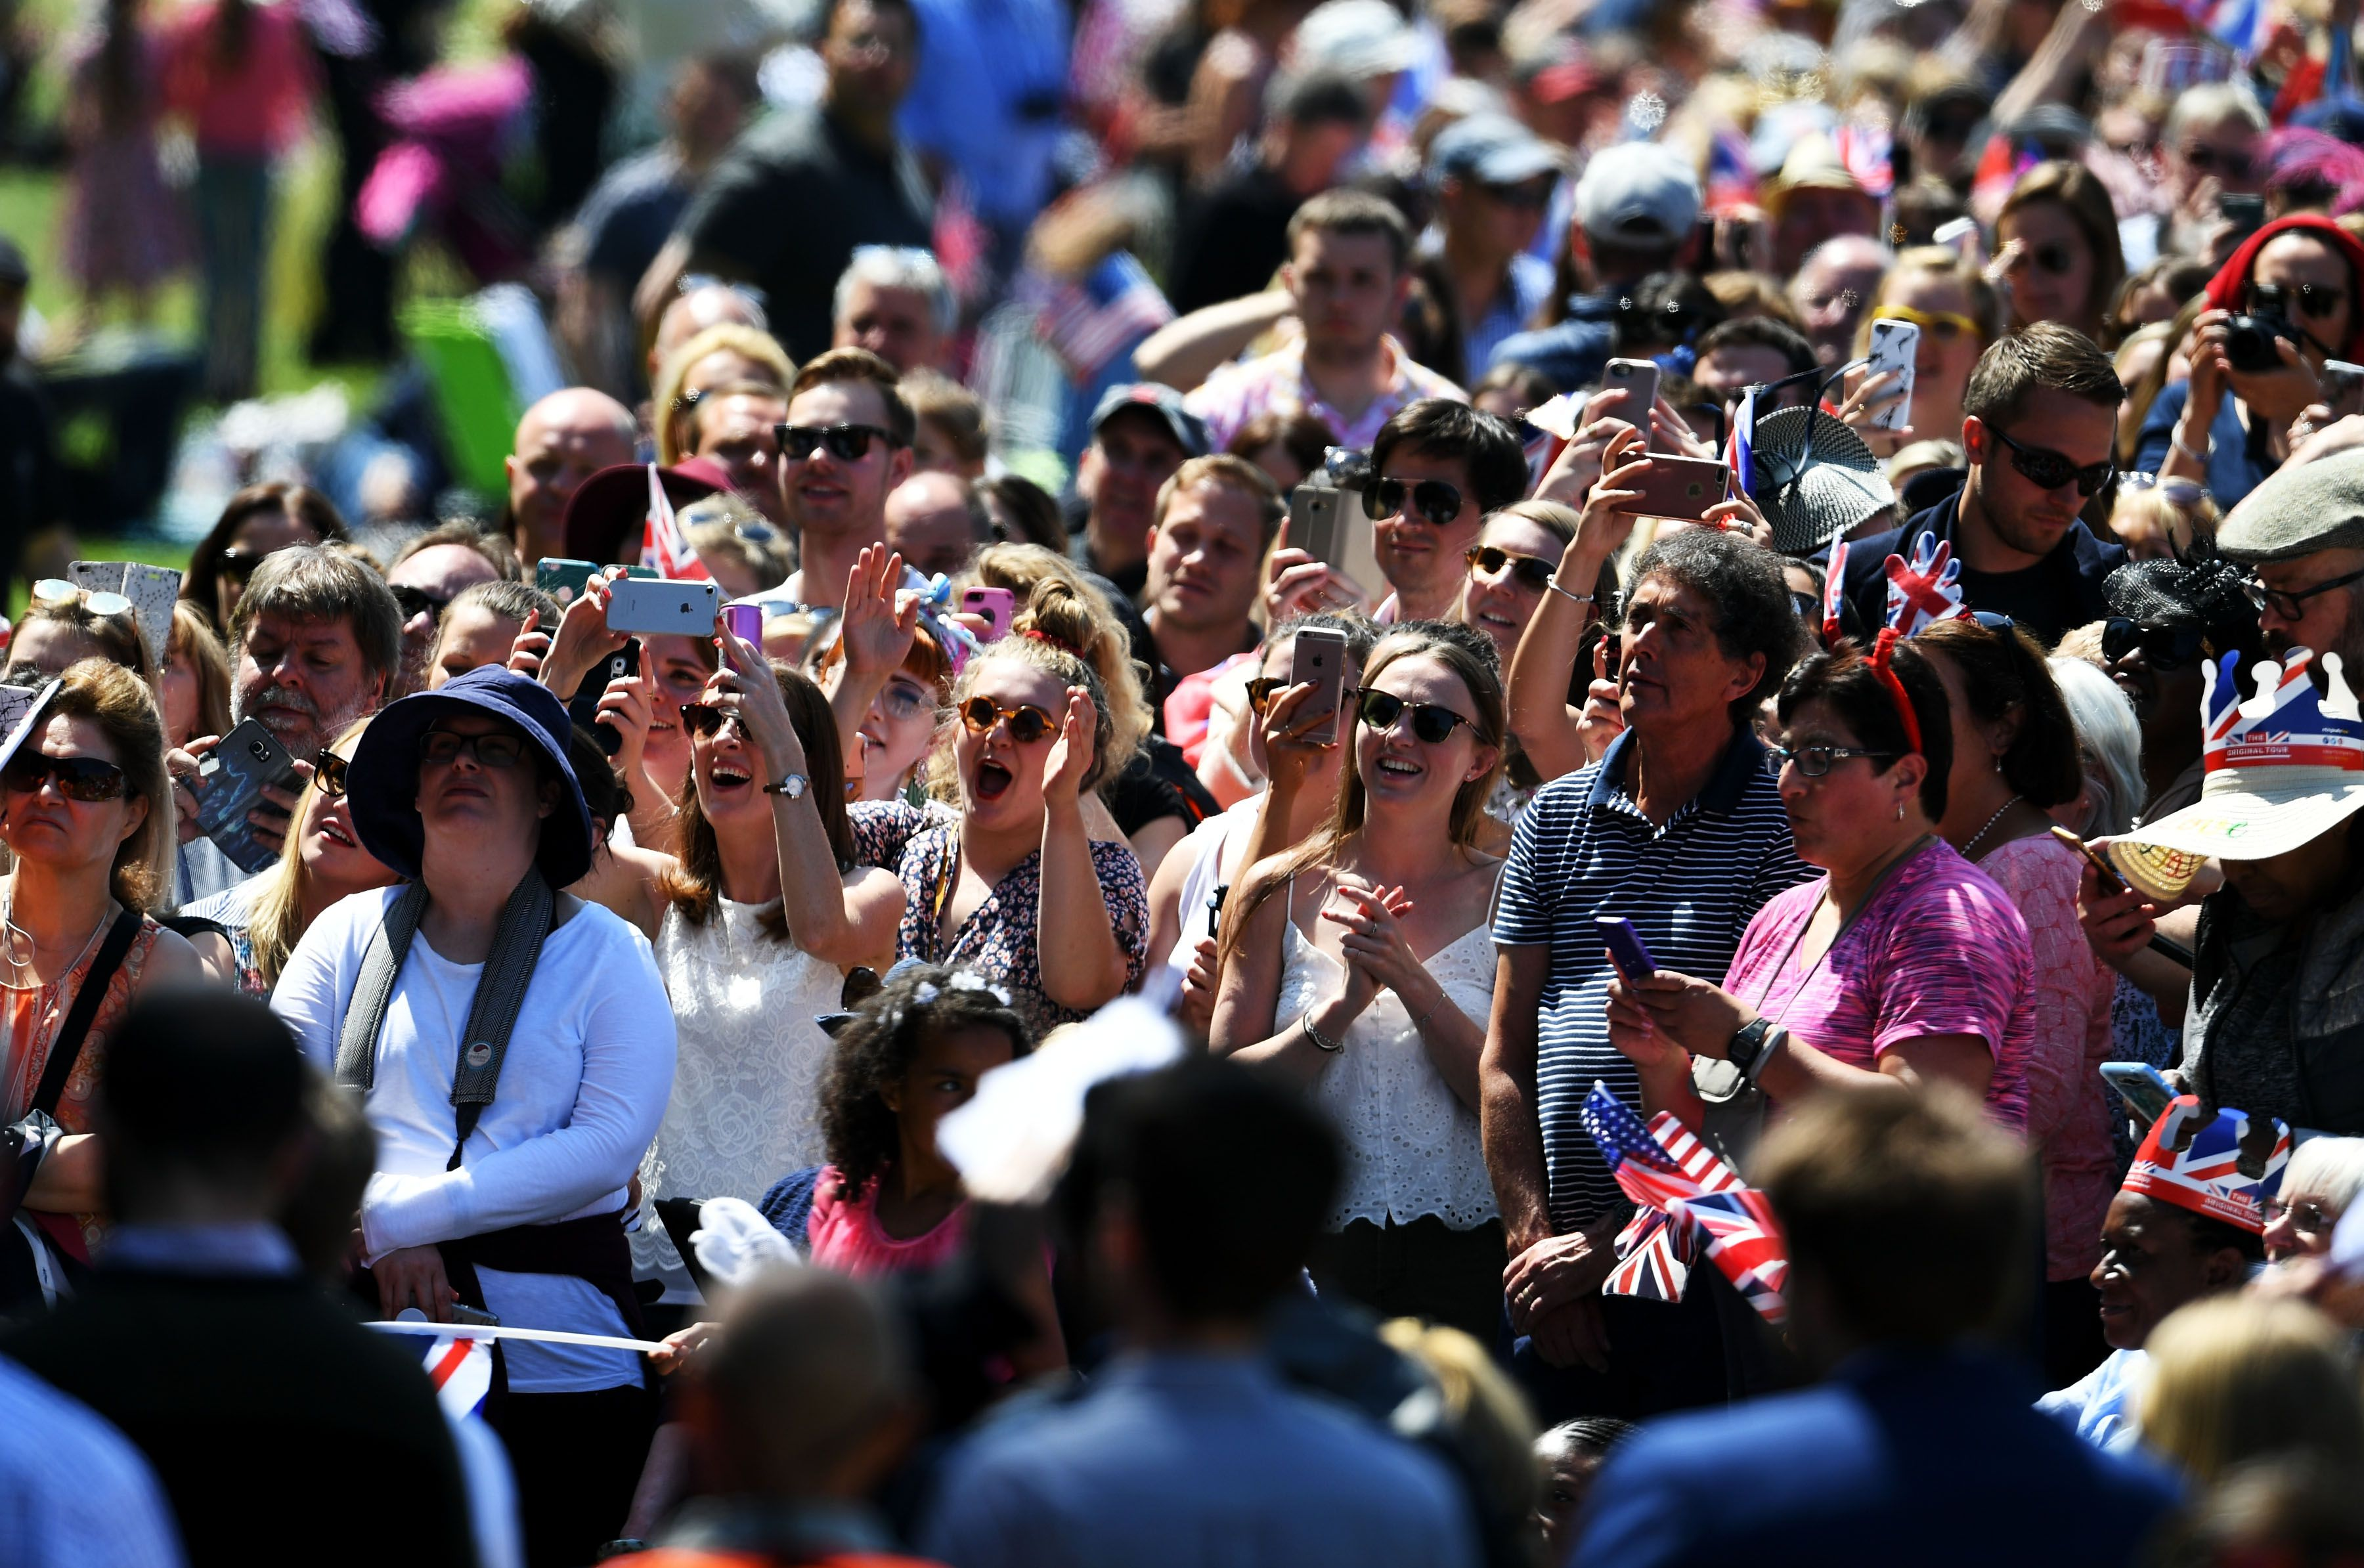 The crowd reacts as Ms. Meghan Markle's car makes it's way down The Long Walk